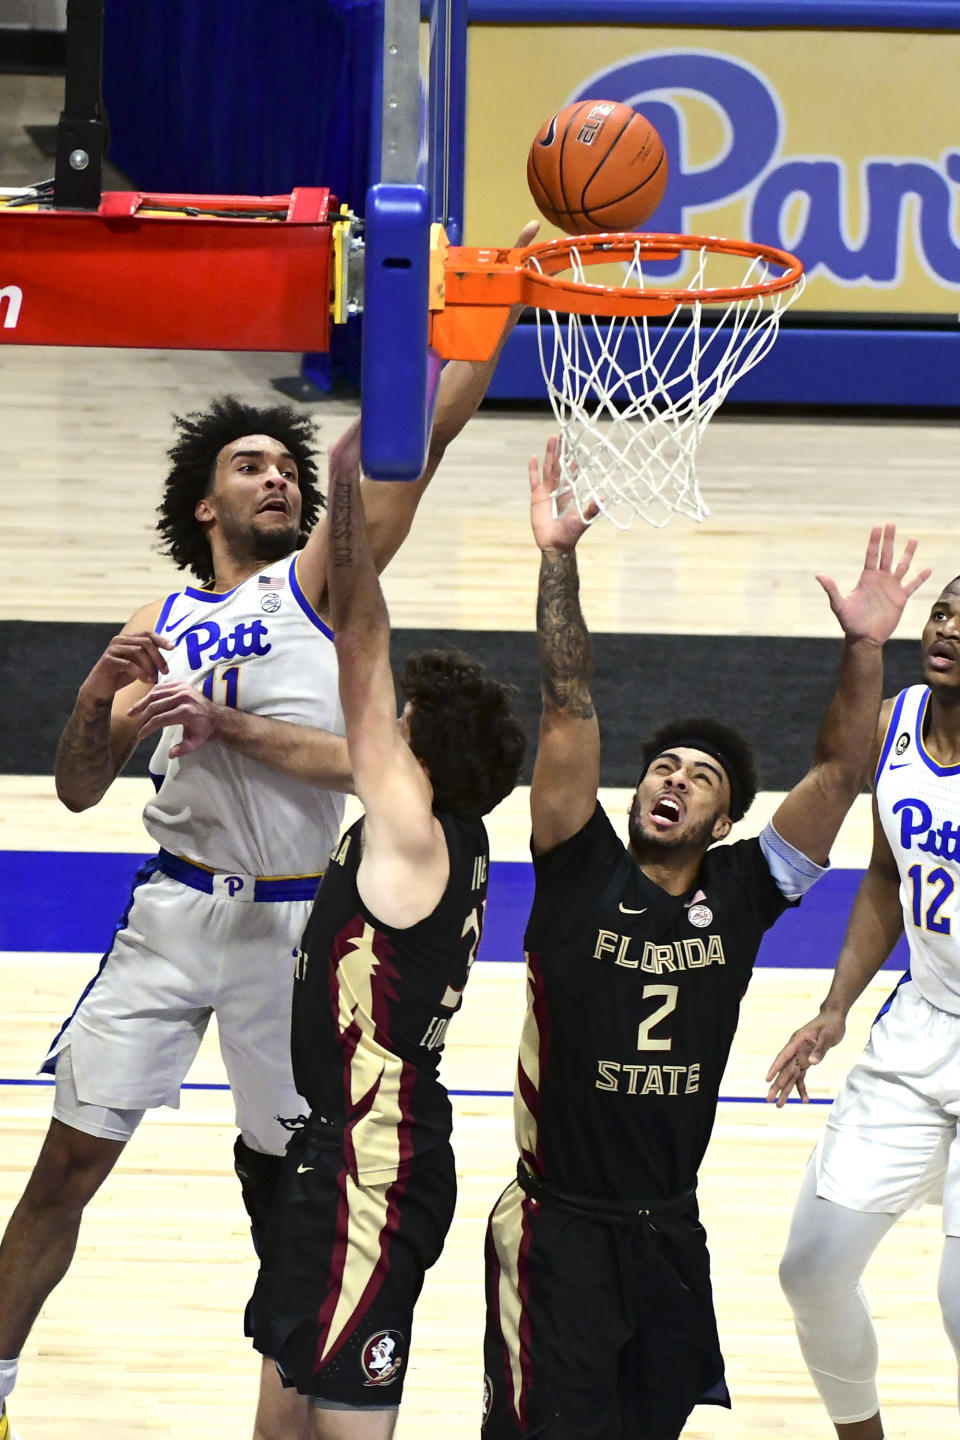 Pittsburgh forward Justin Champagnie, left, shoots against Florida State during the first half of an NCAA college basketball game, Saturday, Feb. 20, 2021, in Pittsburgh. (AP Photo/Fred Vuich)